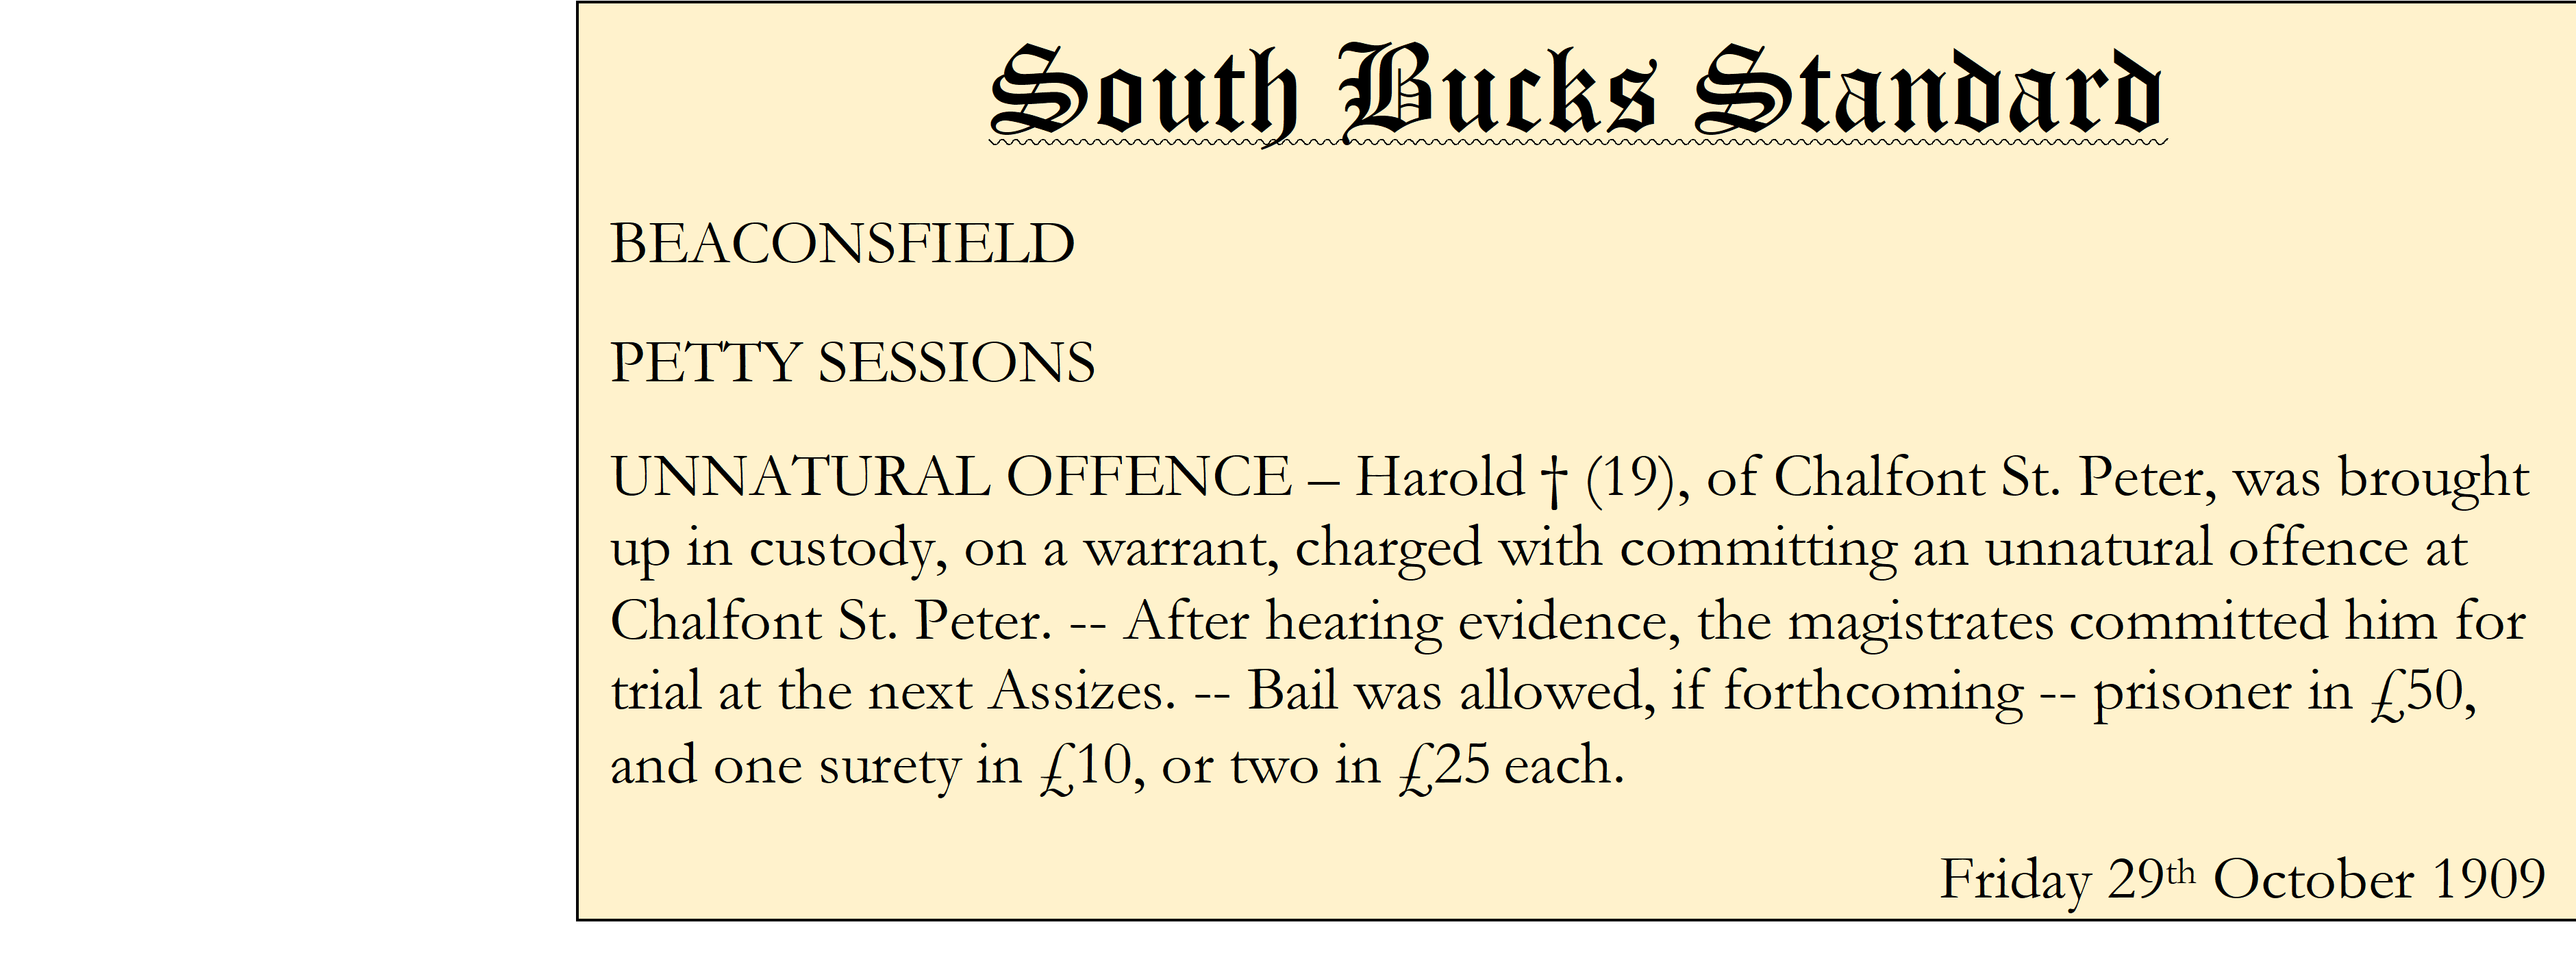 South Bucks Standard BEACONSFIELD PETTY SESSIONS UNNATURAL OFFENCE – Harold † (19), of Chalfont St. Peter, was brought up in custody, on a warrant, charged with committing an unnatural offence at Chalfont St. Peter. -- After hearing evidence, the magistratescommitted him for trial at the next Assizes. -- Bail was allowed, if forthcoming -- prisoner in £50, and one surety in £10, or two in £25each. Friday 29th October 1909